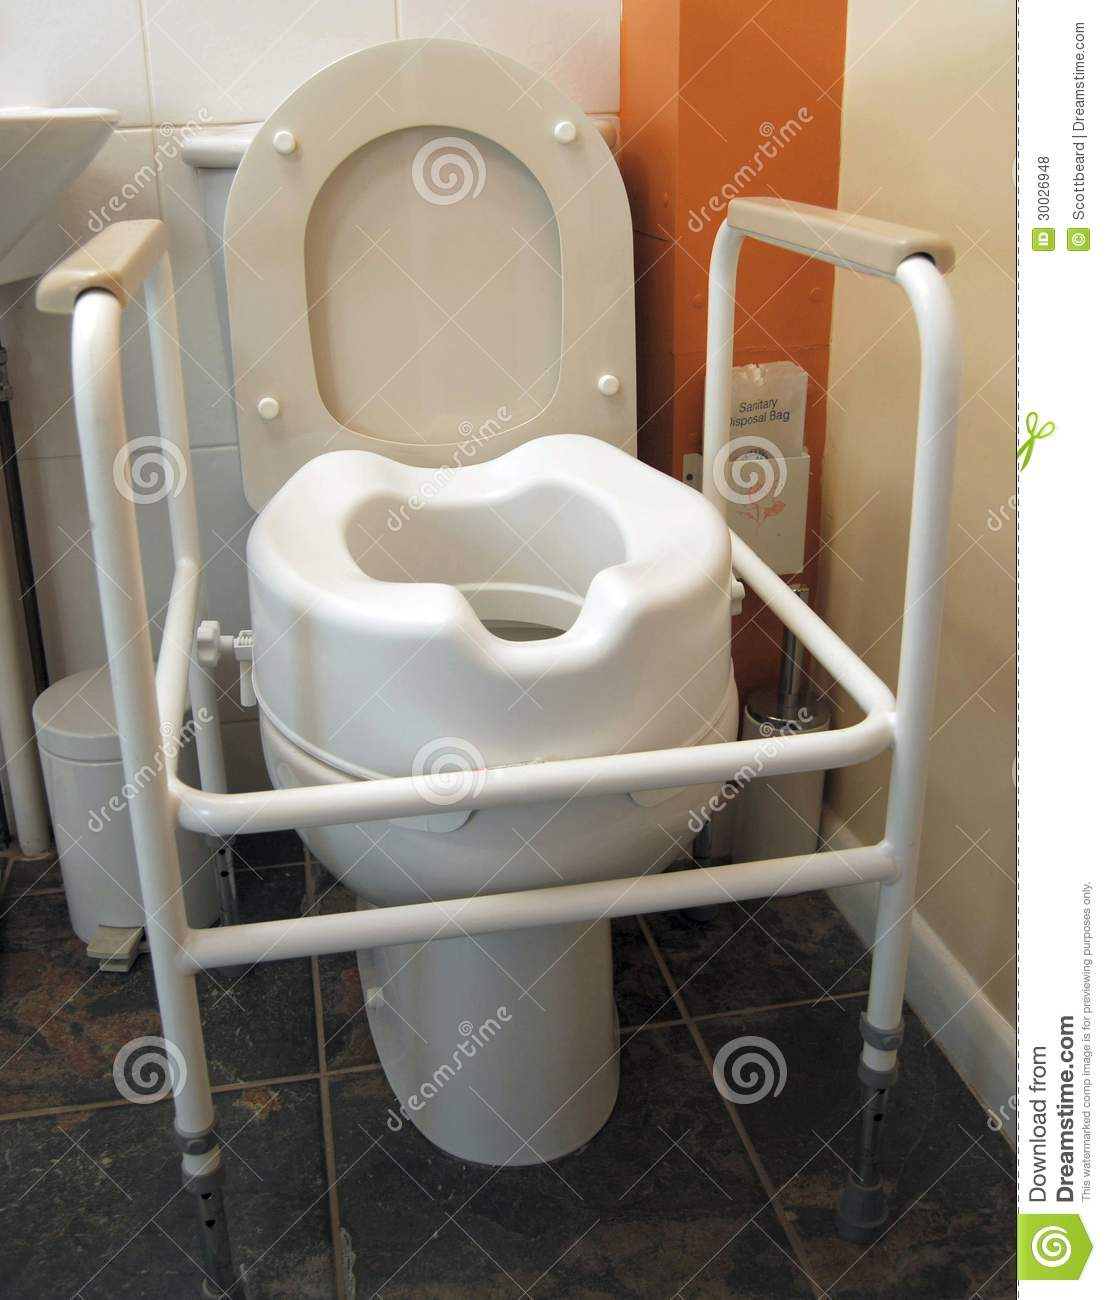 Disabled Toilet With Handles And Raised Seat Stock Photo - Image ...